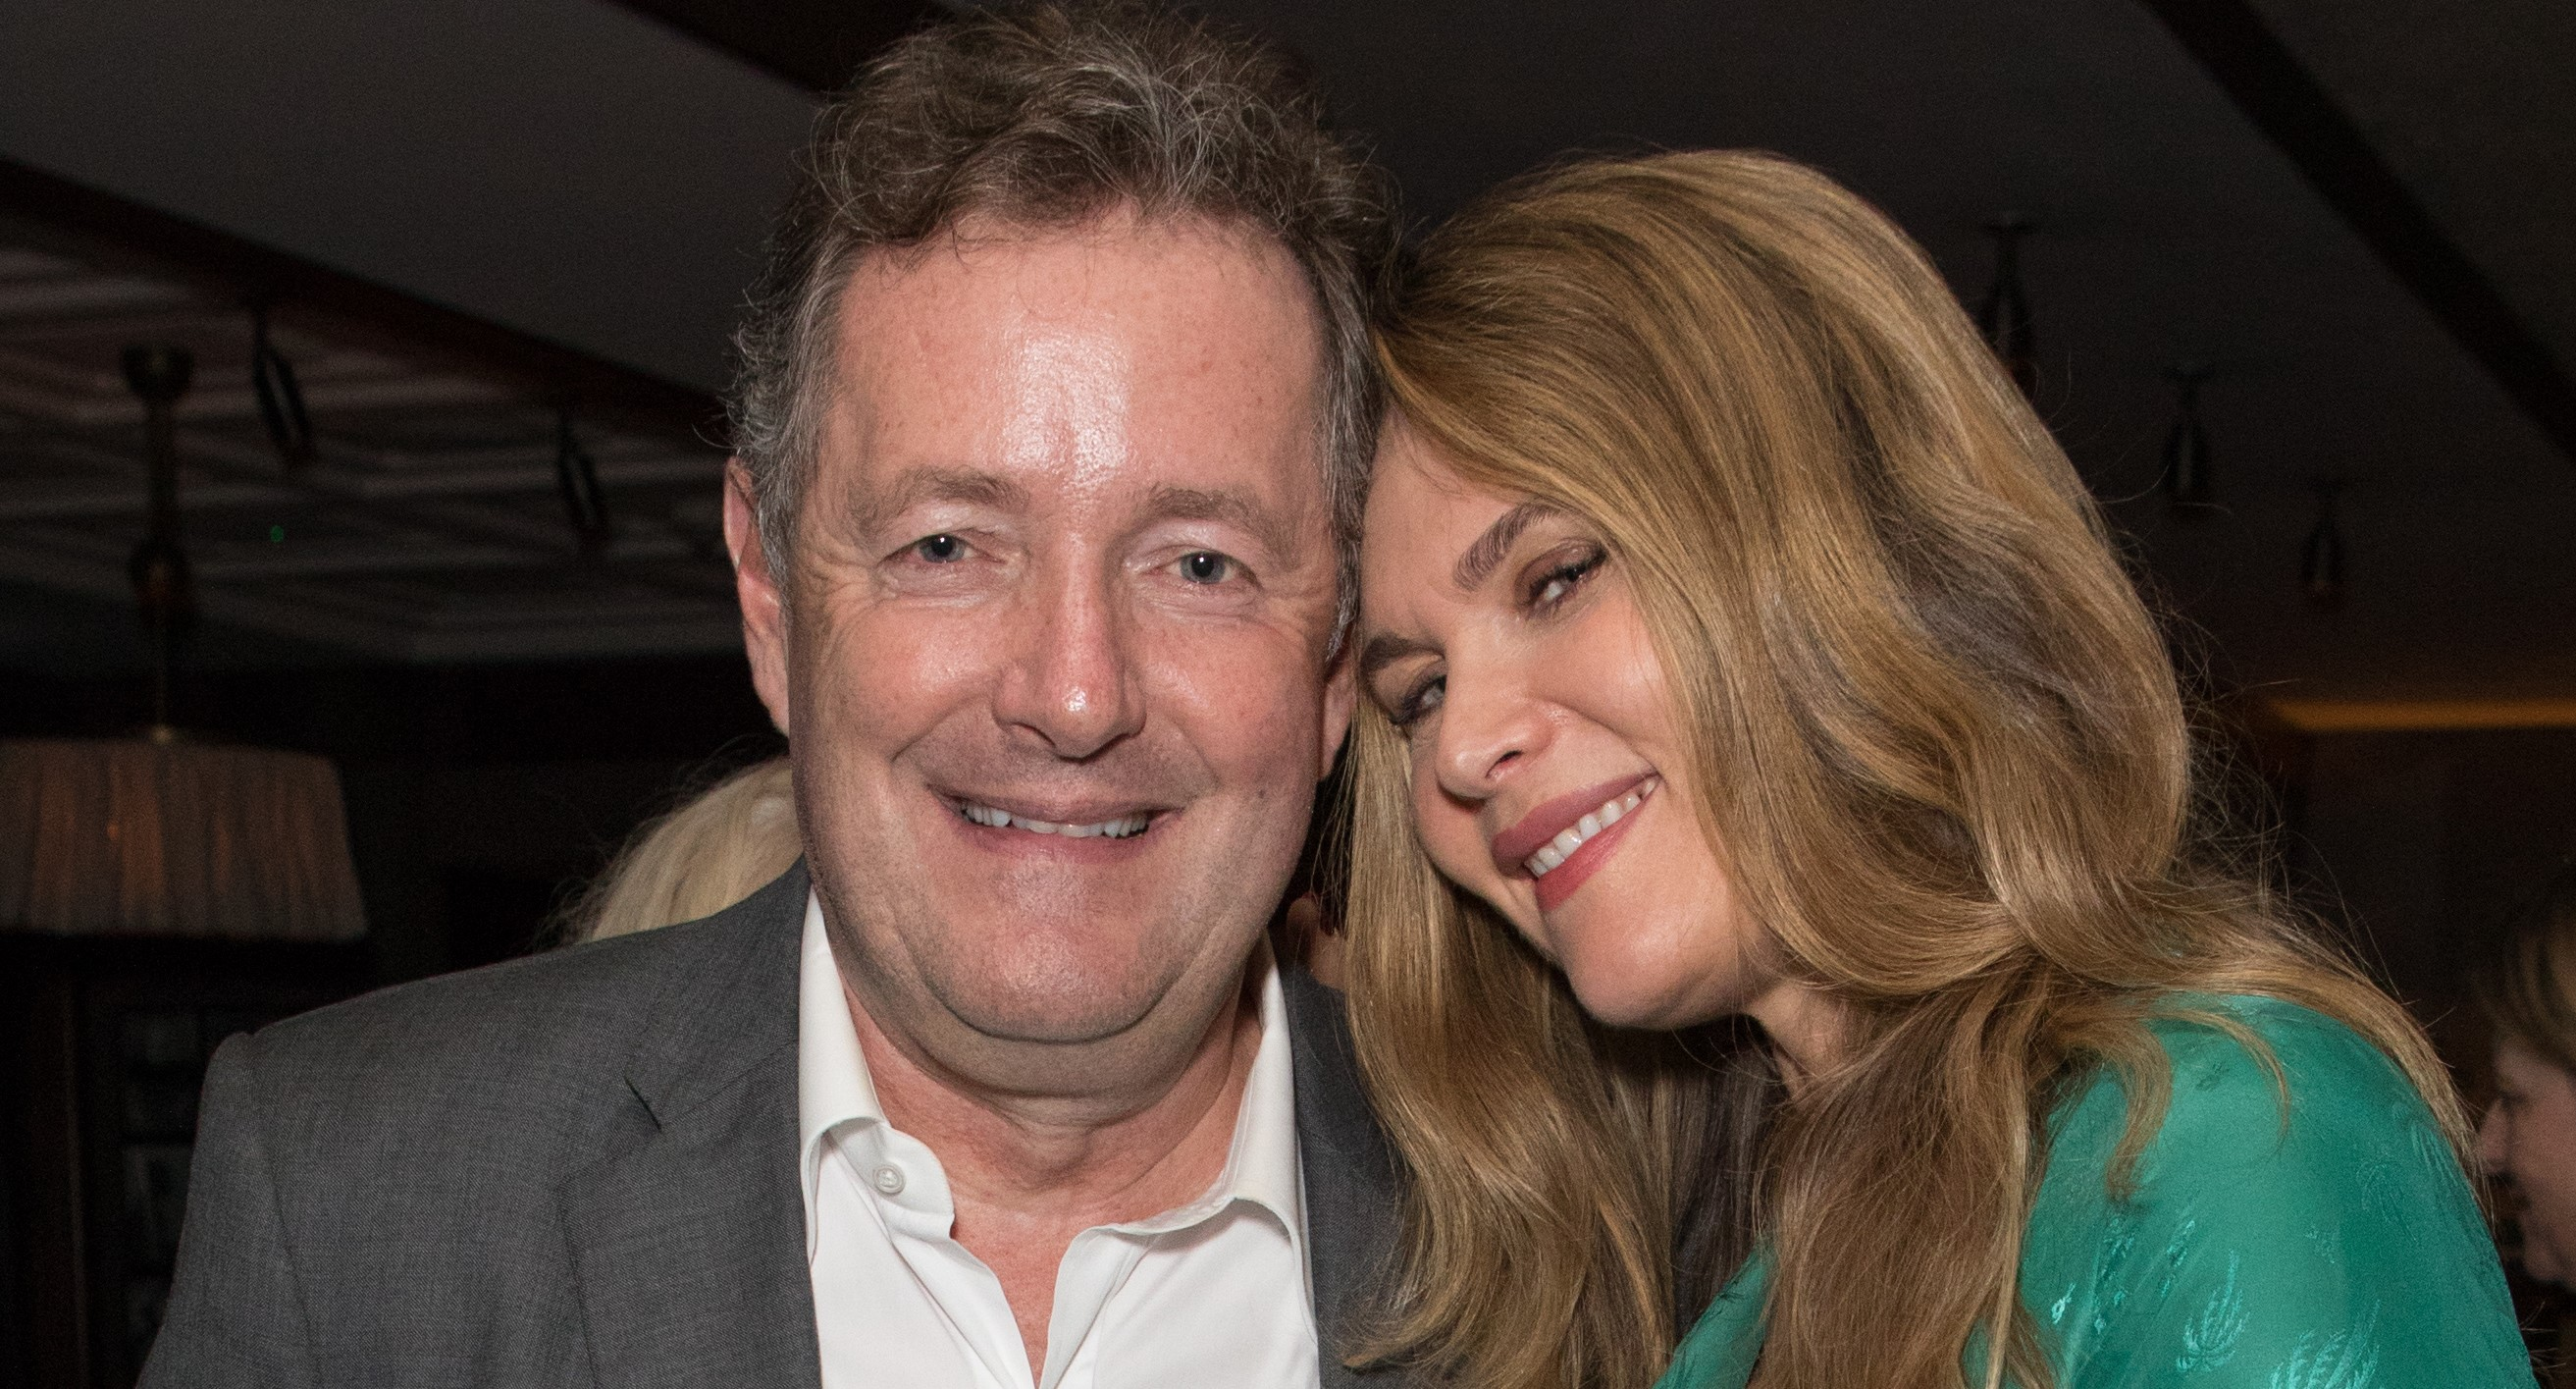 Piers Morgan and wife Celia laugh off claims he's 'risking his marriage' for GMB co-star Susanna Reid